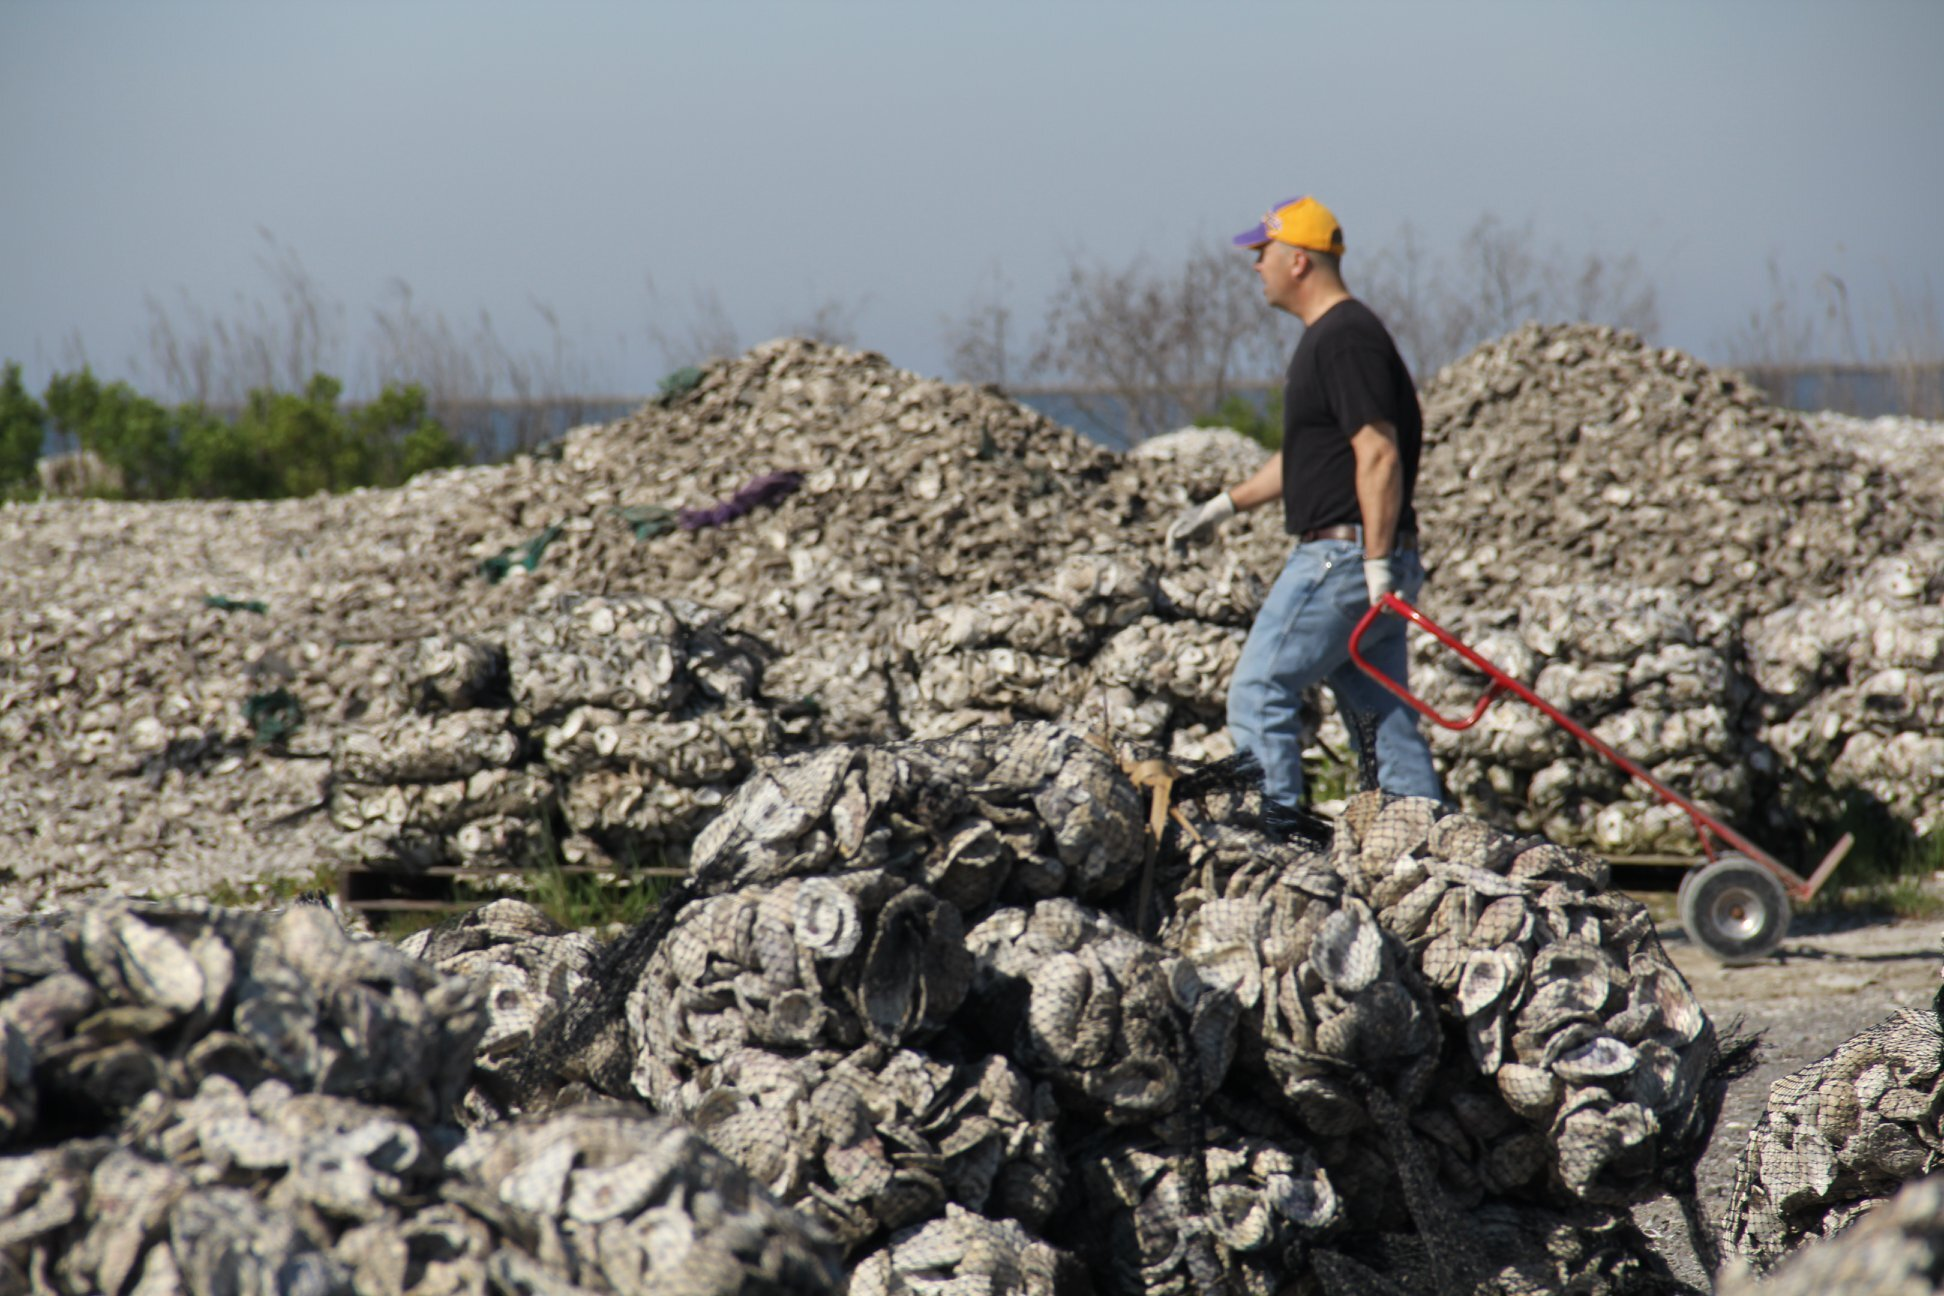 Oyster Shell Reef To Protect Louisiana Tribeis History From